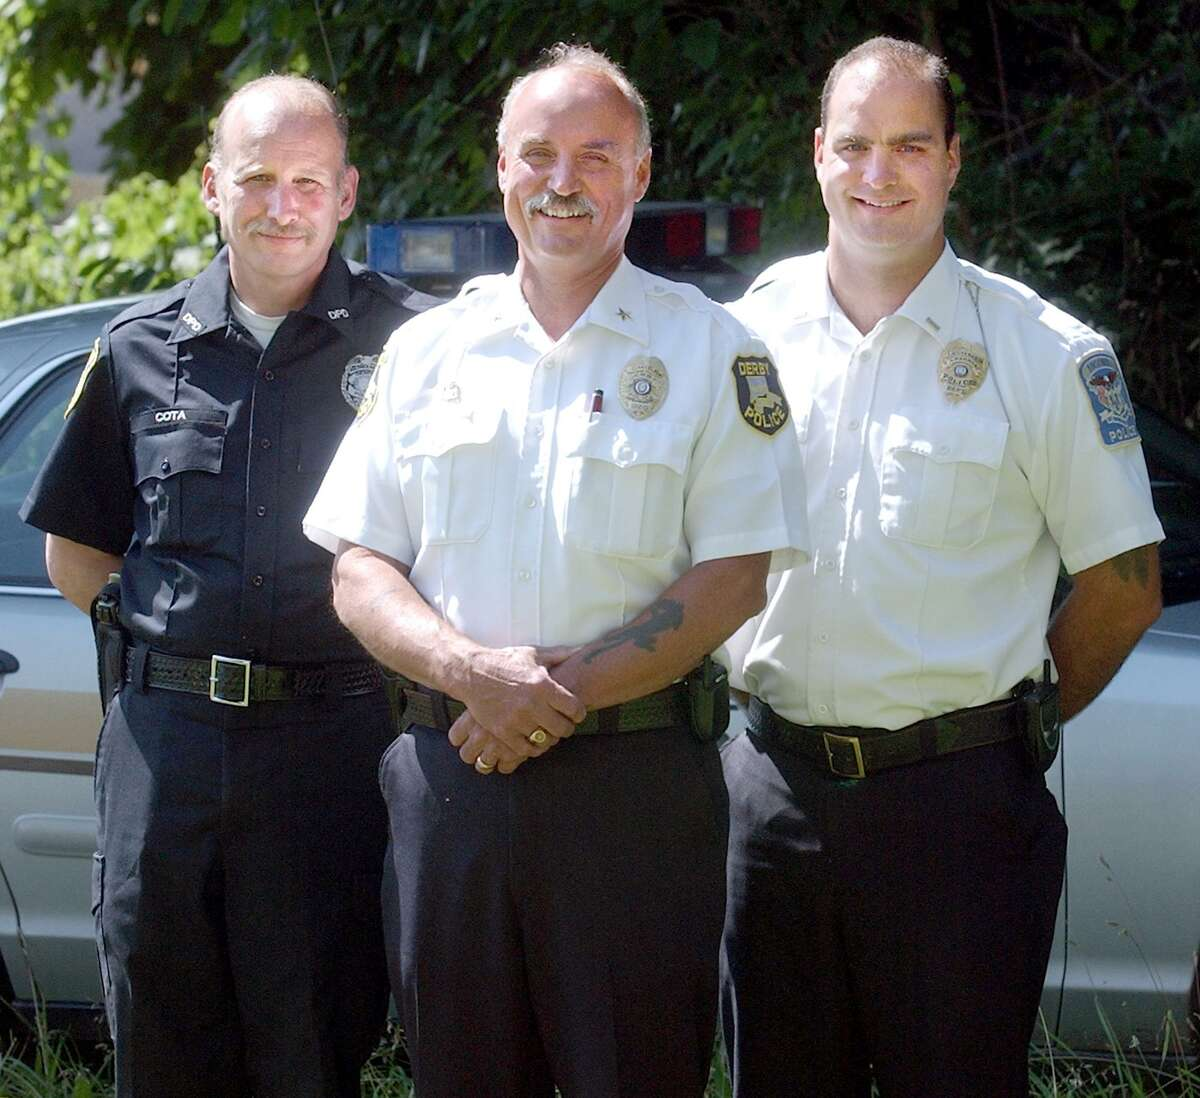 A 2003 photo shows the Cota family in uniform. From left to right the late Allen Cota, who served 25 years as a Derby police officer, his brother Andrew Cota Jr.as Derby Police Chief and Andrew Cota III, a lieutenant in the Ansonia police department who was appointed interim chief of his department beginning Feb. 15.